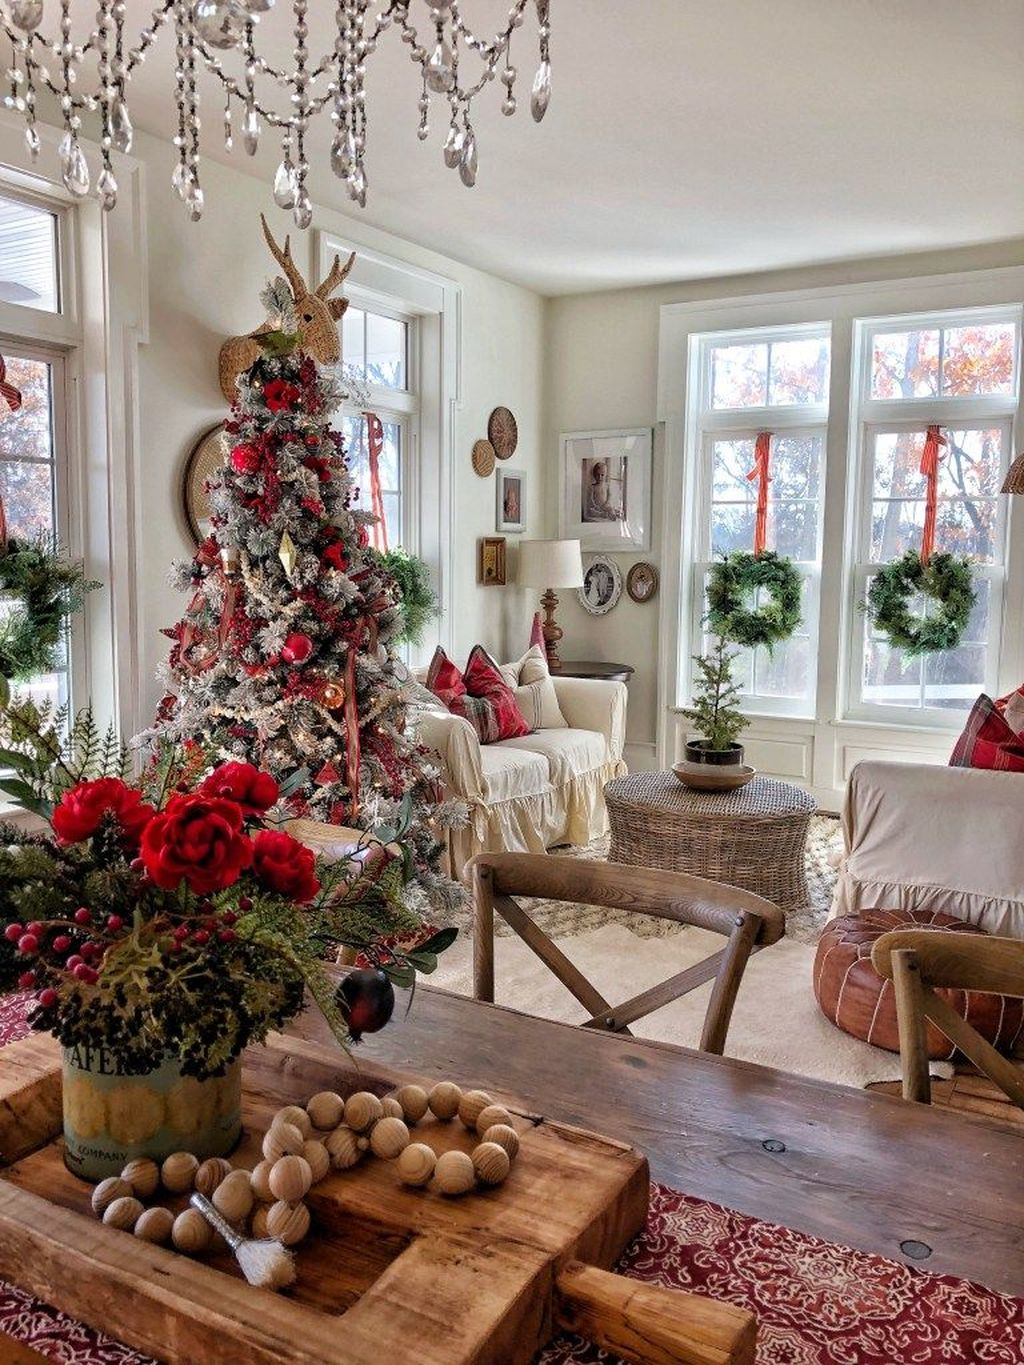 Beautiful Christmas Interior Design Ideas You Never Seen Before 31